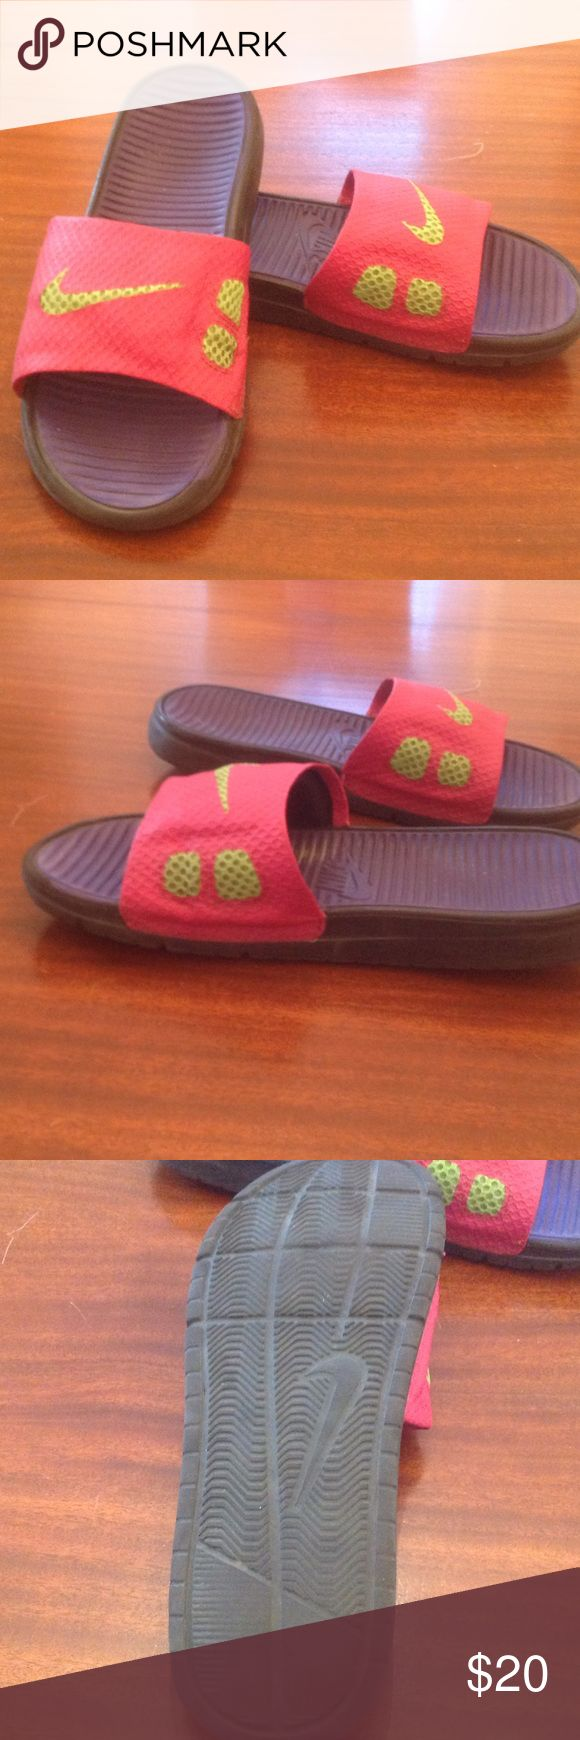 Epically Comfortable Nike slip on sandals These sandals are so comfortable! Perfect for the beach or any other water activities. Purple gel like soles. Lime green mesh Nike design. This shoe will bring much comfort to the soles of its next owner. Quality brand, will last a long time. Excellent condition. Nike Shoes Sandals